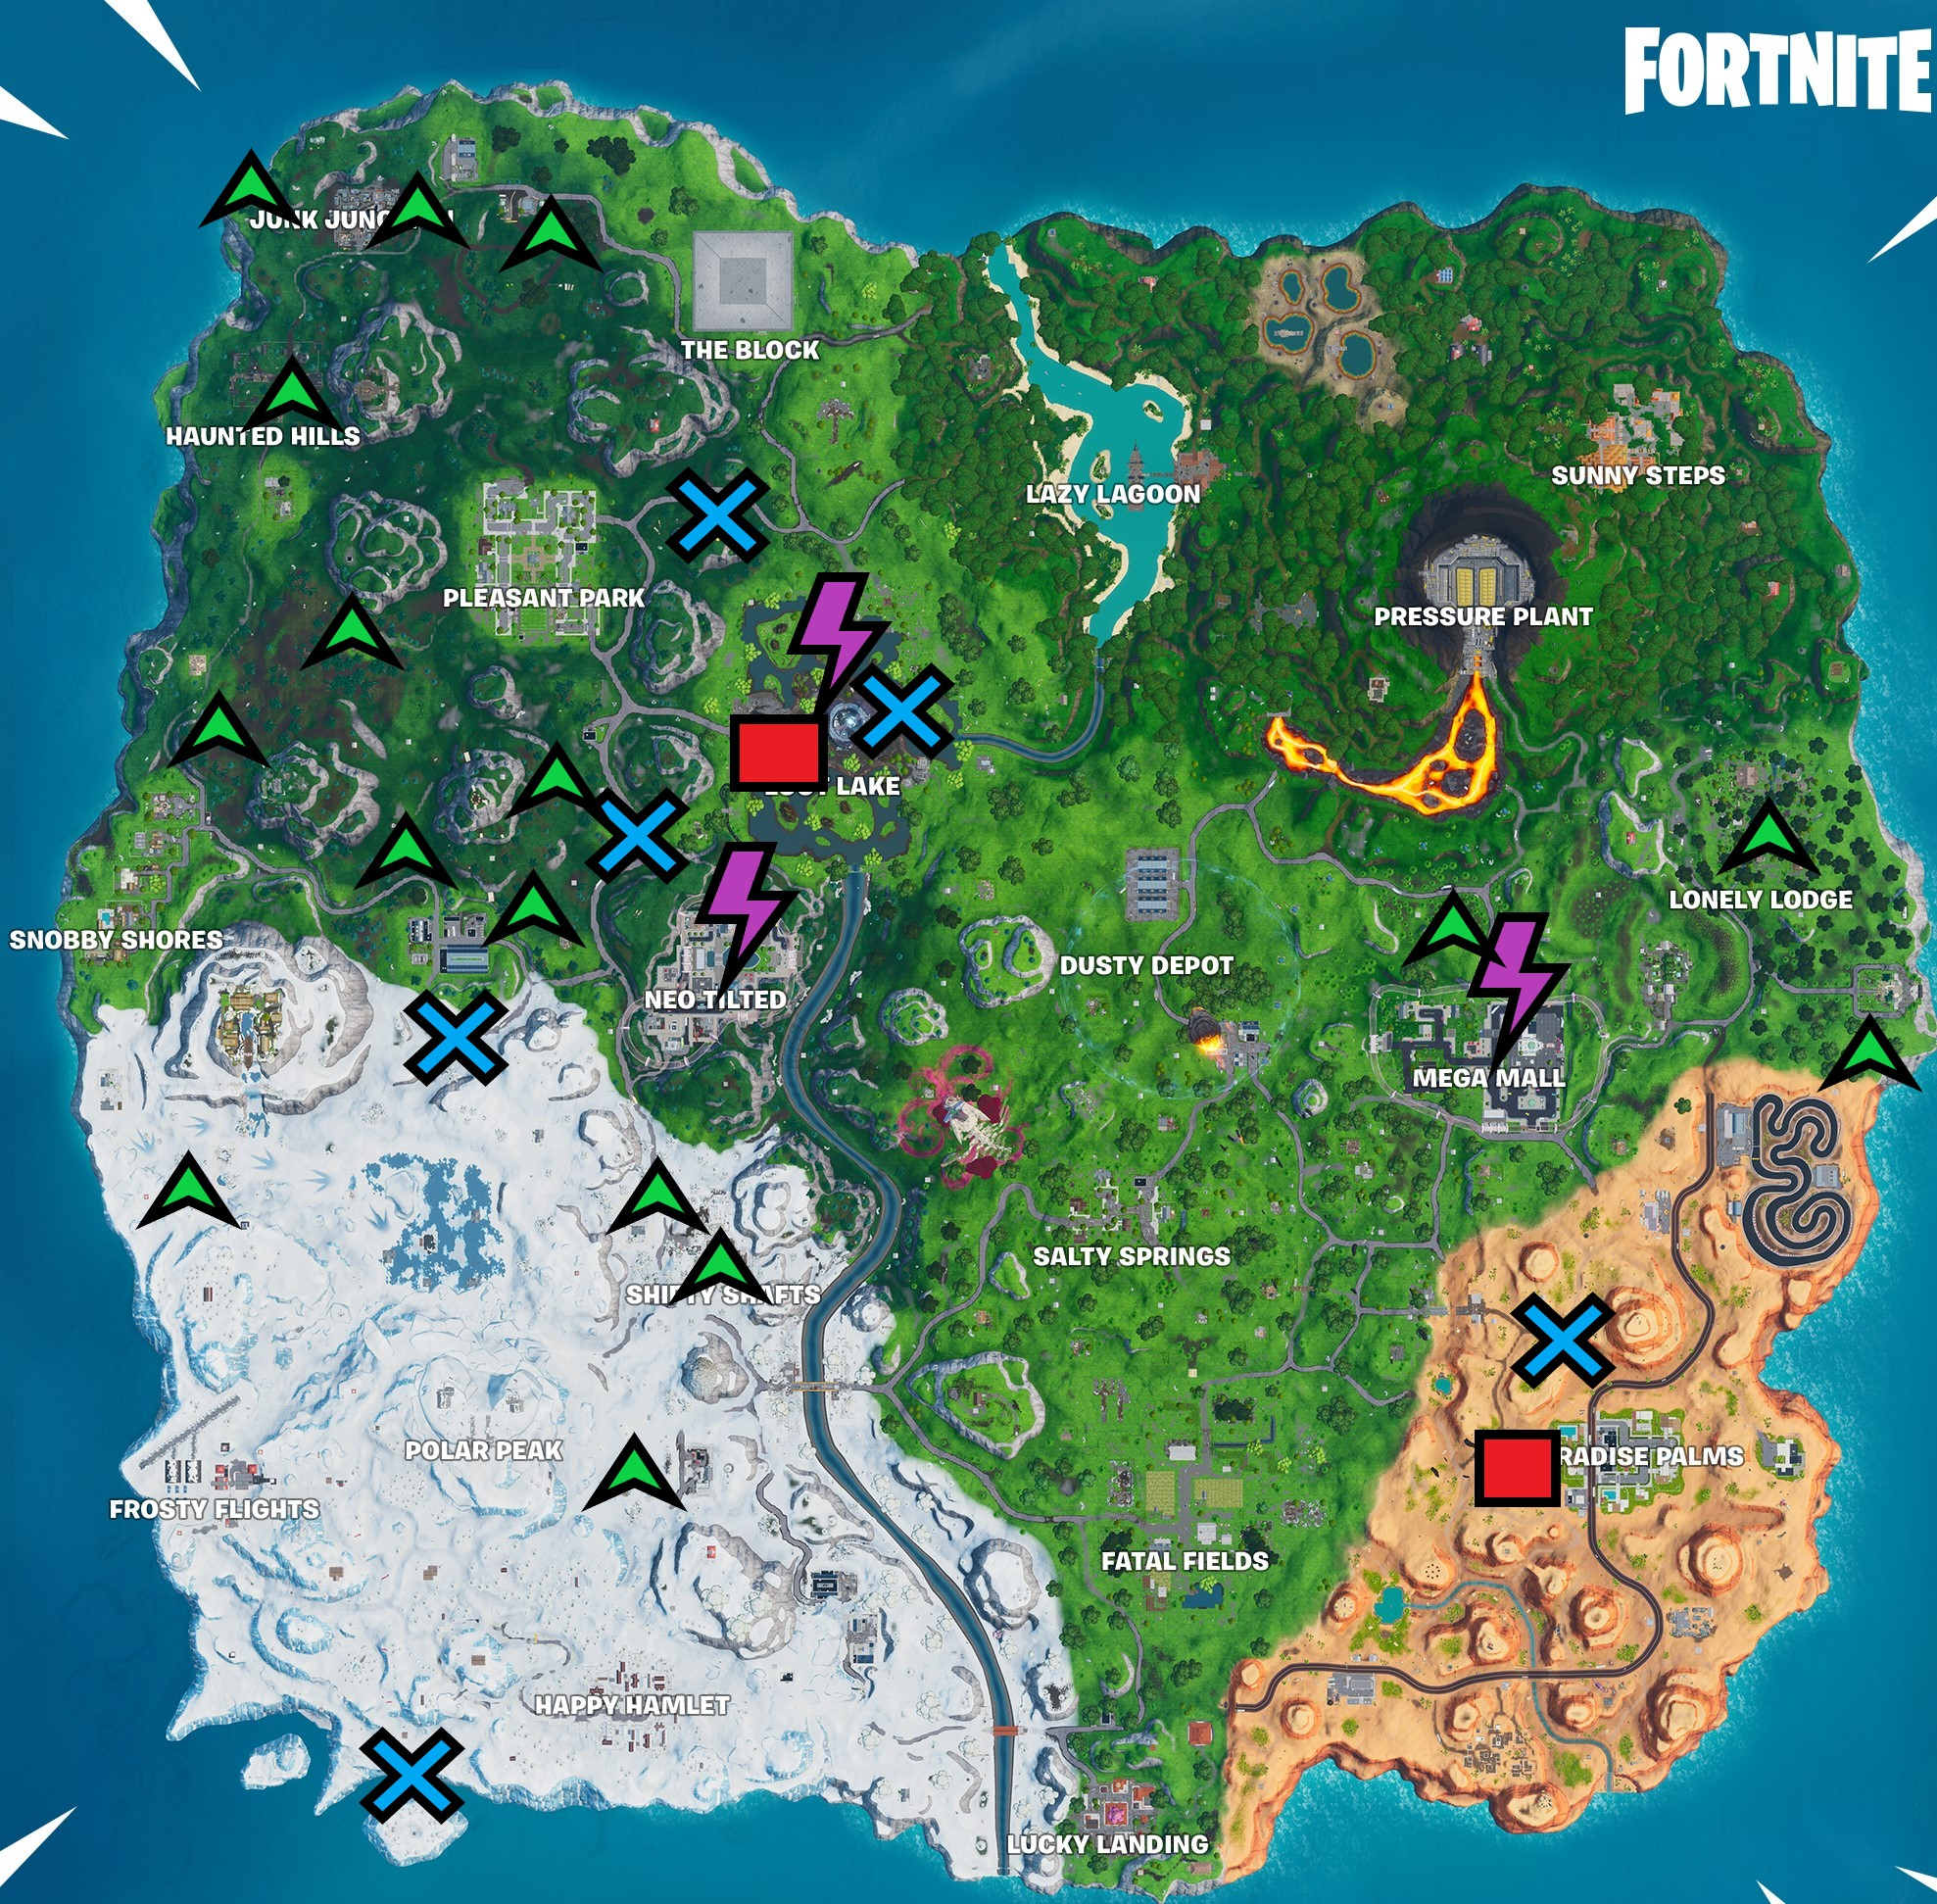 fortnite season 10 week 3 Cheat Sheet